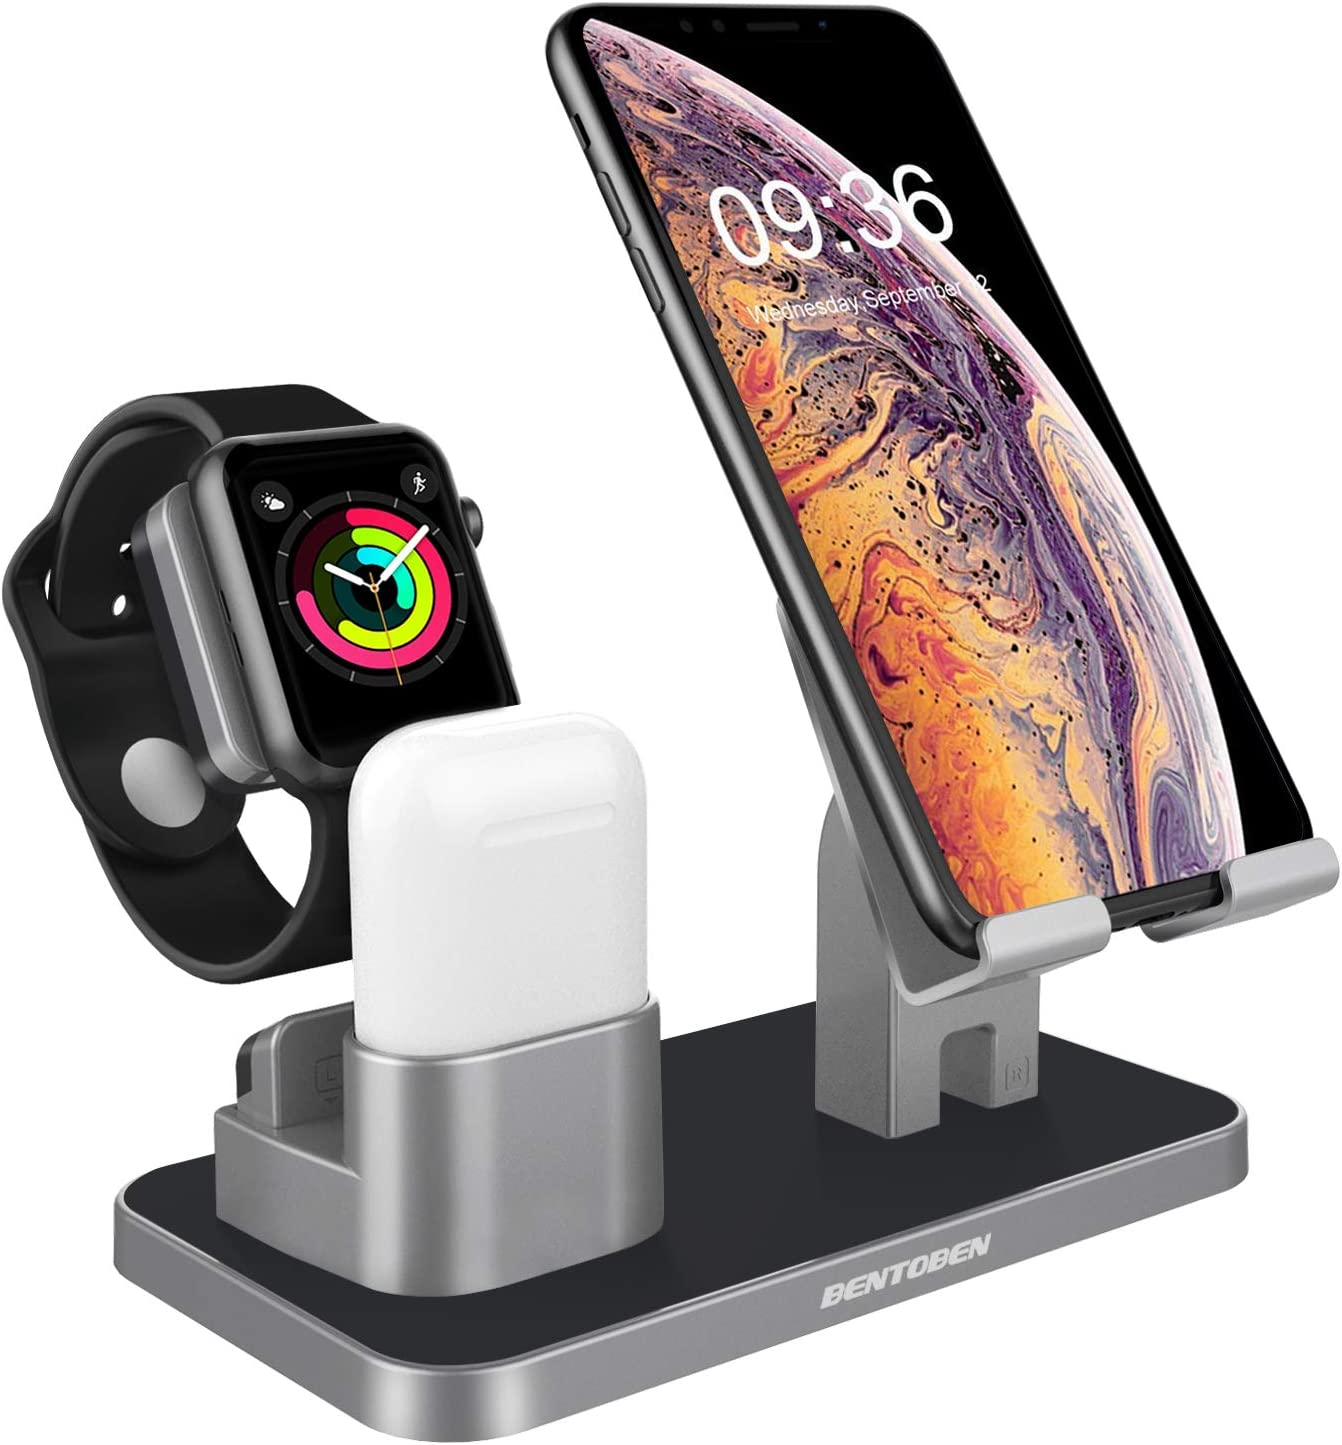 BENTOBEN Compatible with Apple Watch Stand Airpods Charger Dock Cell Phone Stand, Universal Desktop Stand Charging Station Holder for iWatch Airpods iPhone iPad Tablet Android Smartphone, Space Gray